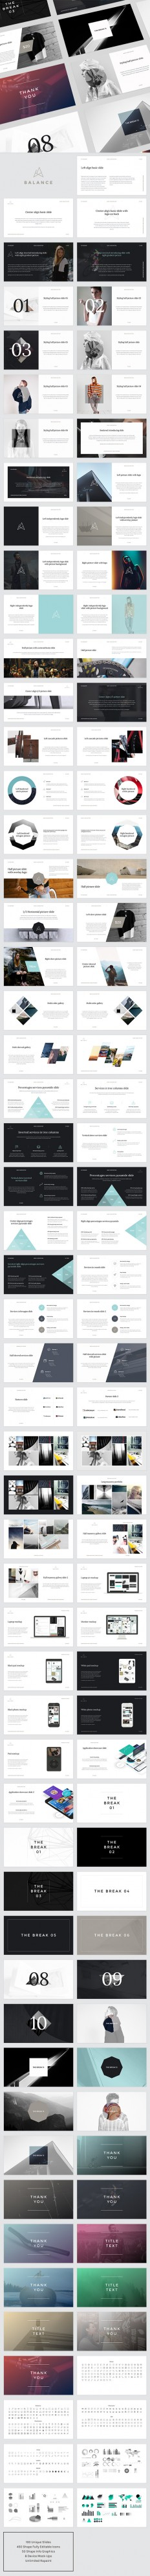 BALANCE PowerPoint Presentation | GraphicRiver